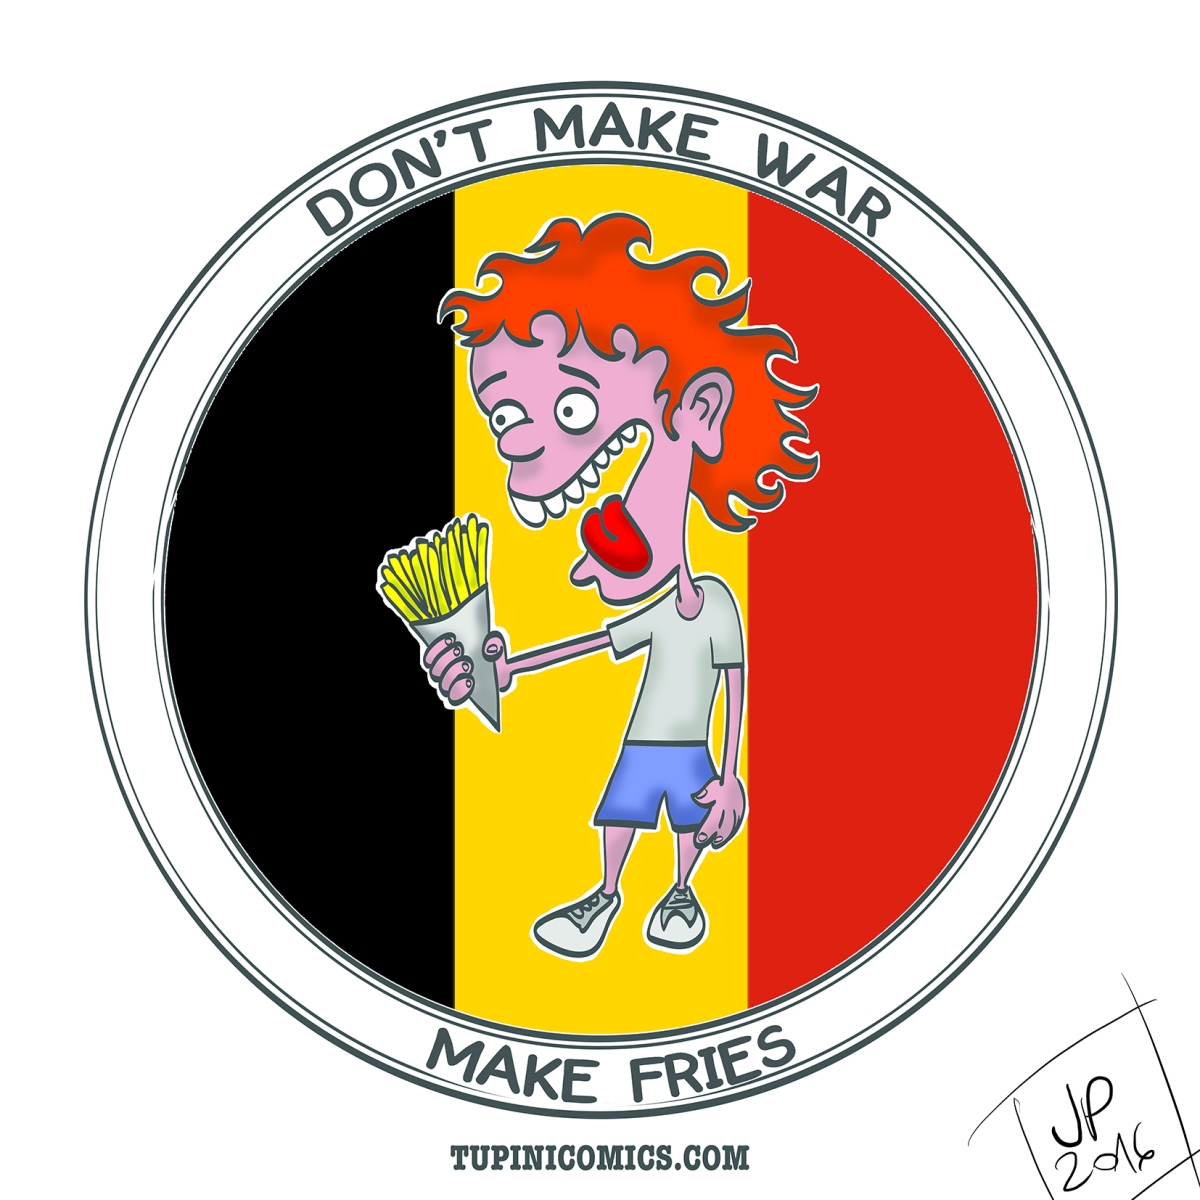 Don't make war, make fries for Belgium